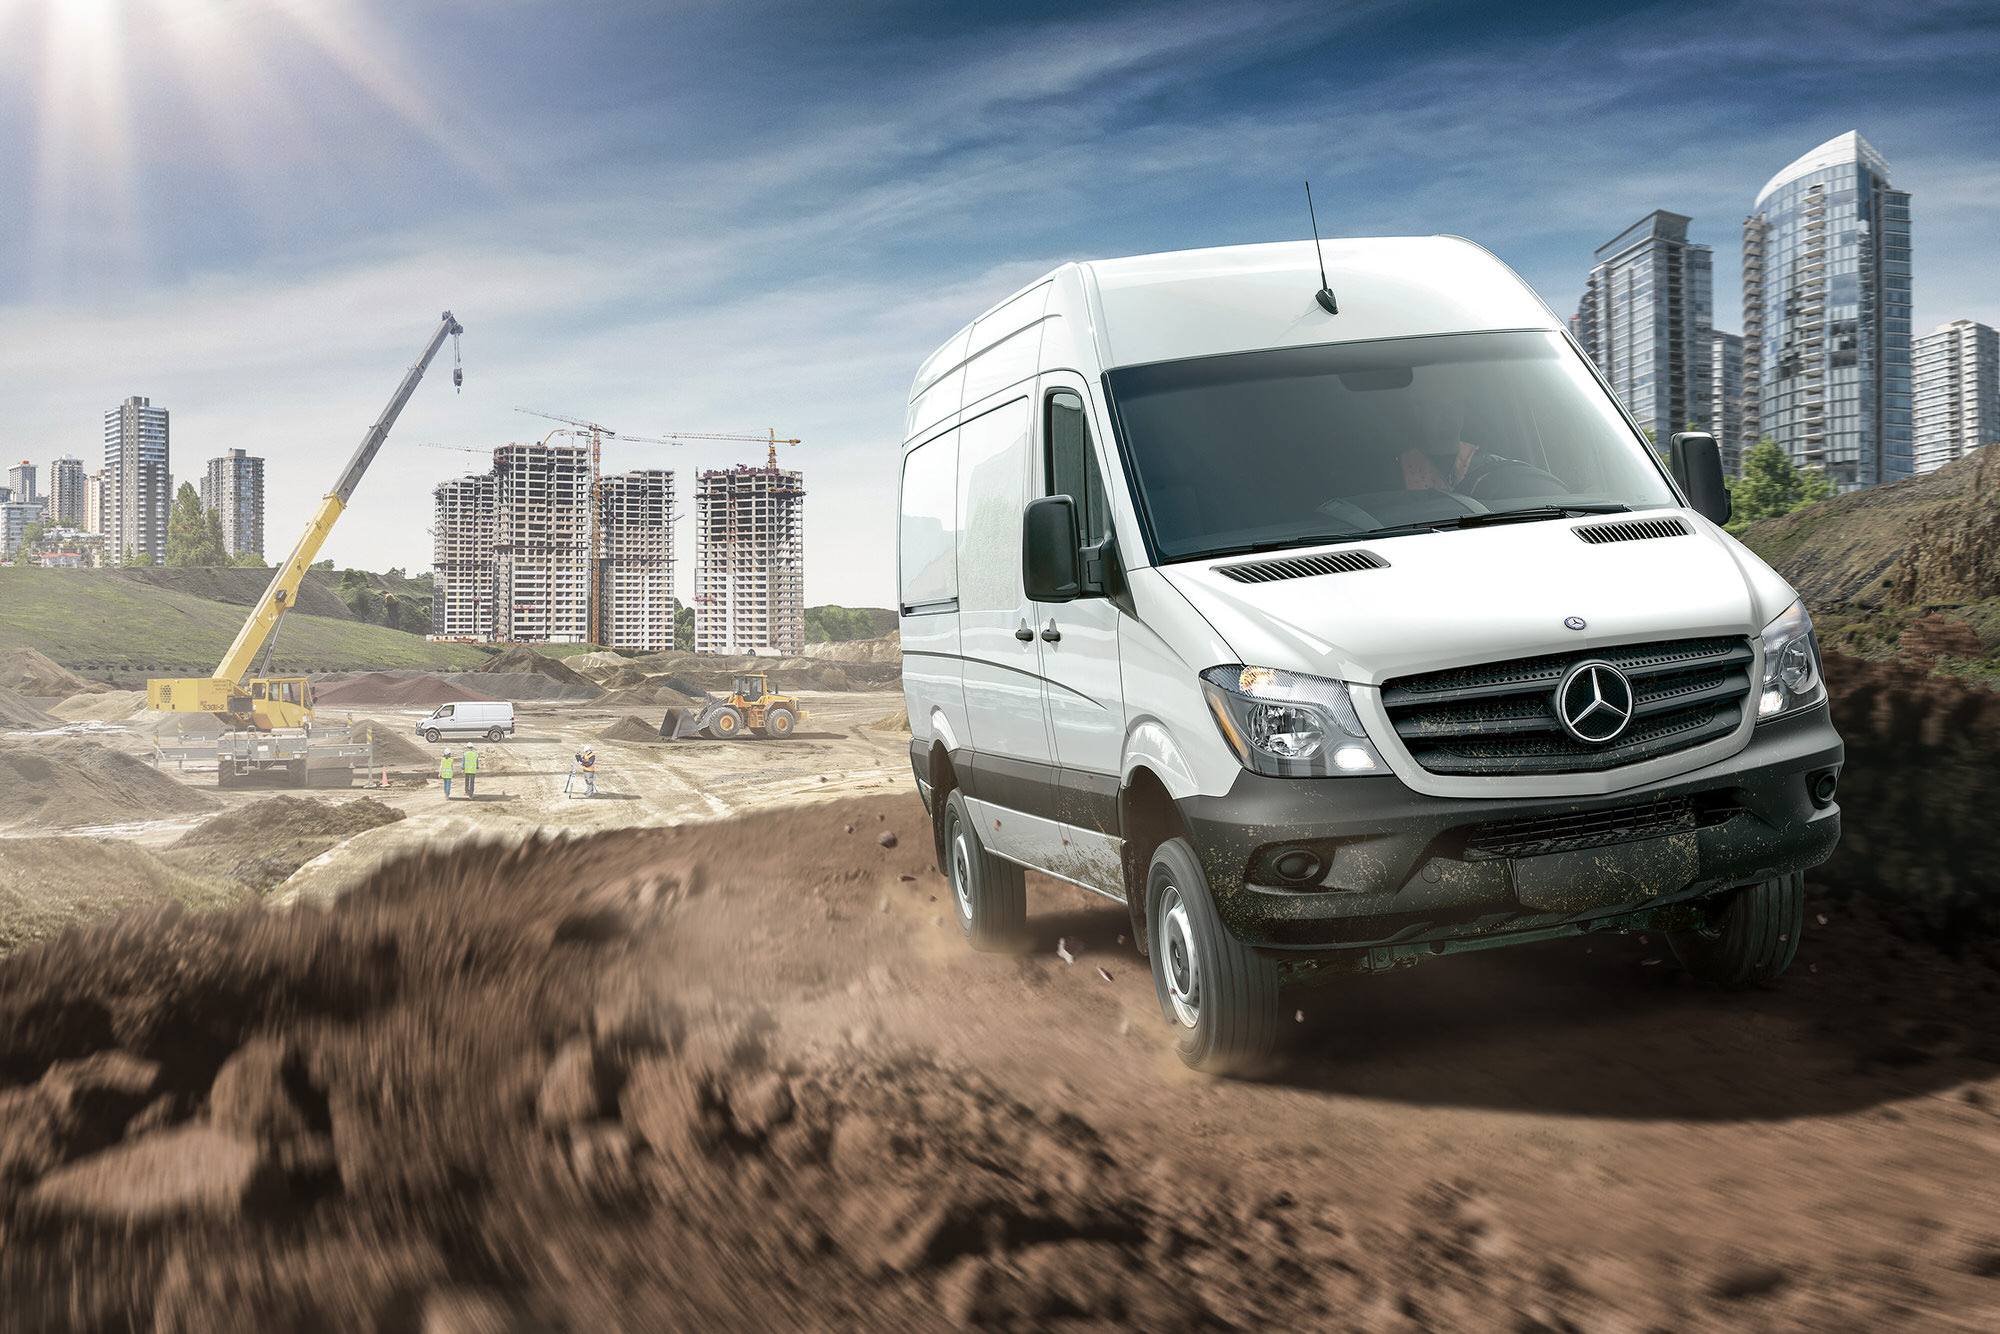 Mercedes-Benz Sprinter Van commercial photography